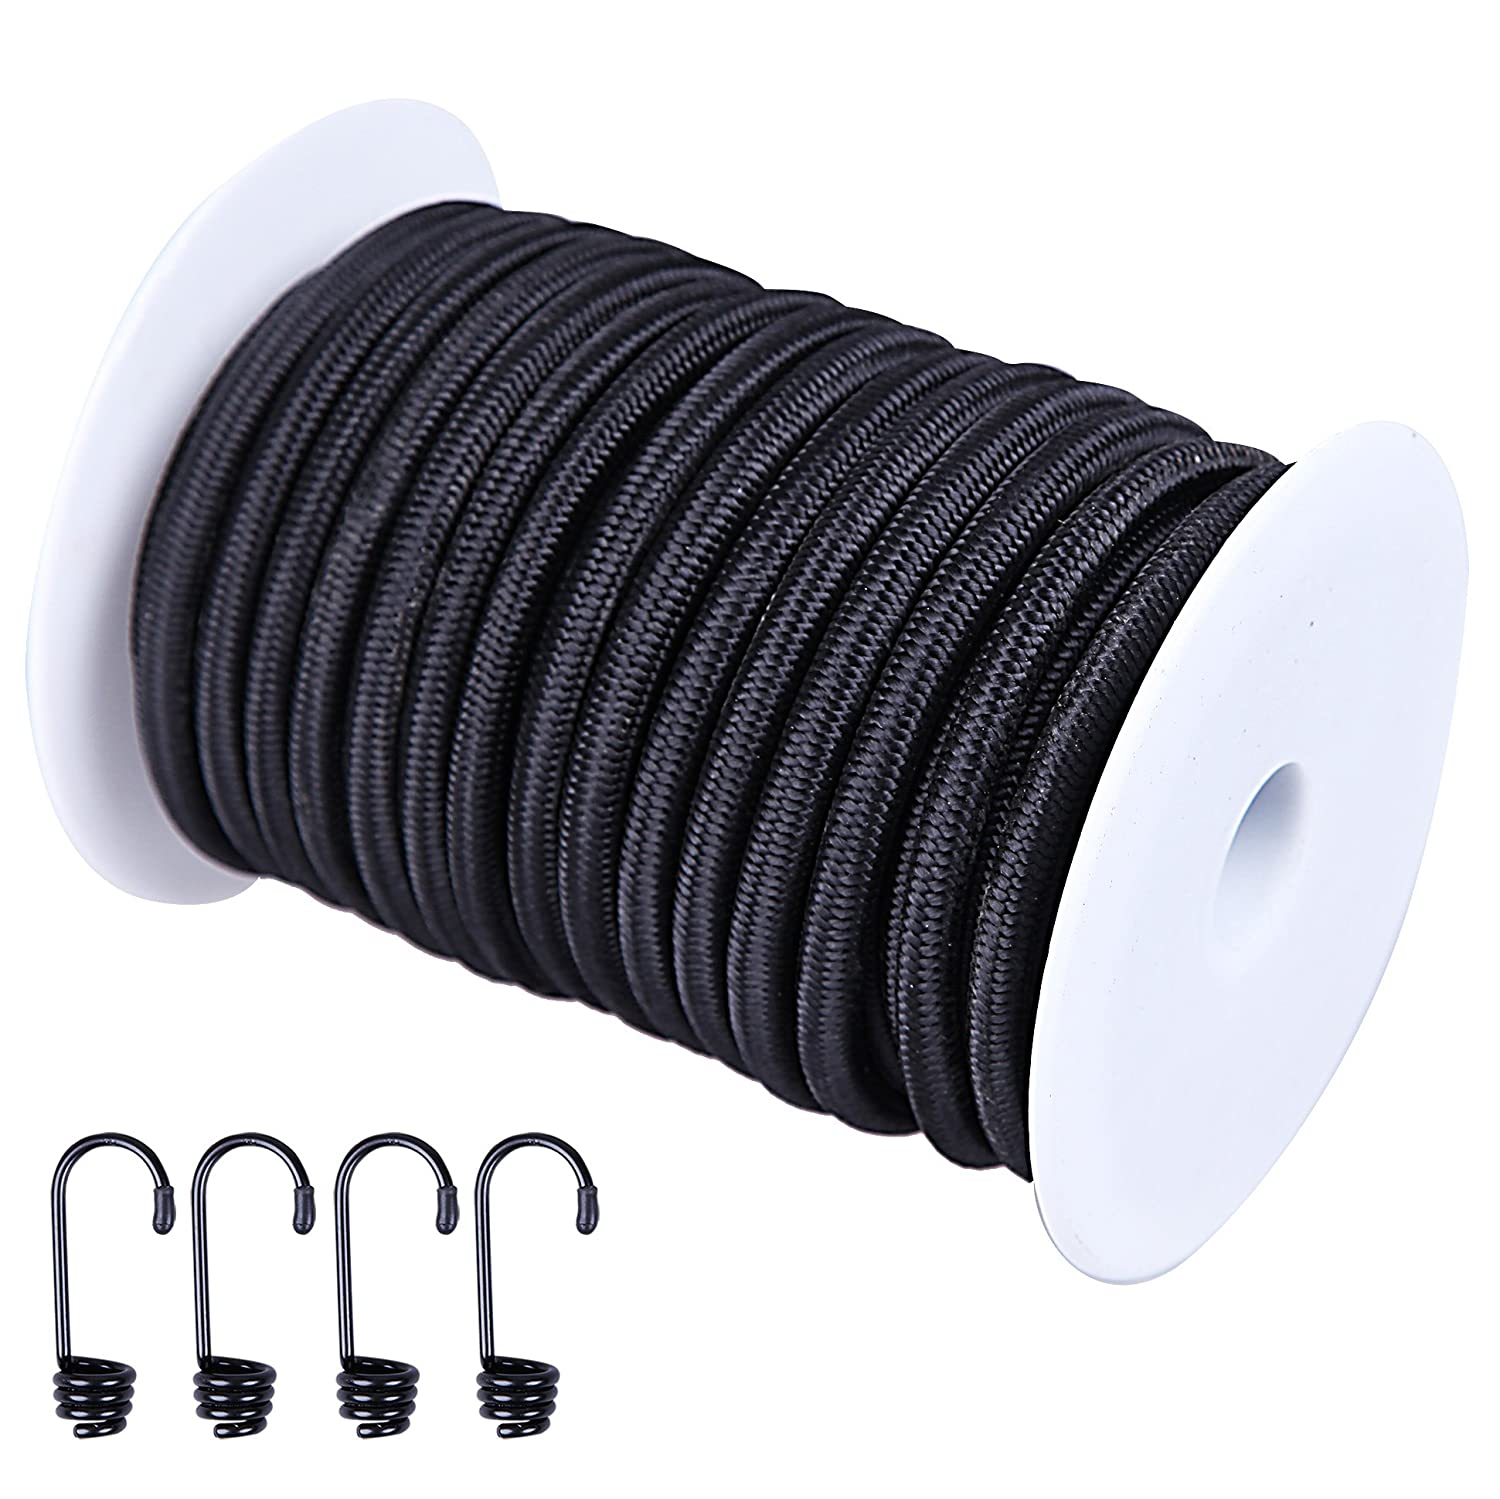 CARTMAN 1//4 Elastic Cord Crafting Stretch String with 4 More Hooks 40kg x 50ft Black Color